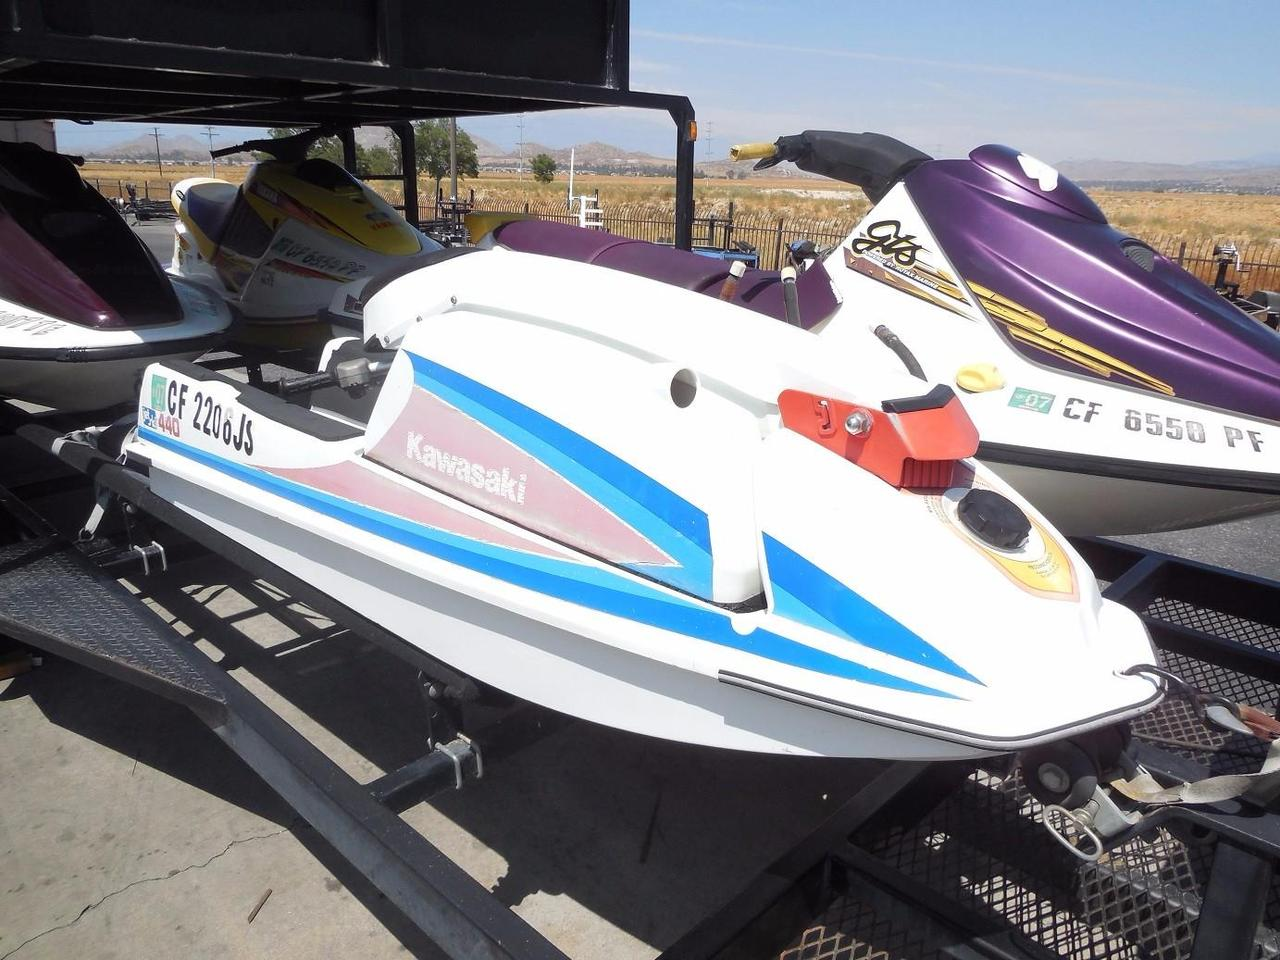 1998 used sea doo gts personal watercraft for sale. Black Bedroom Furniture Sets. Home Design Ideas